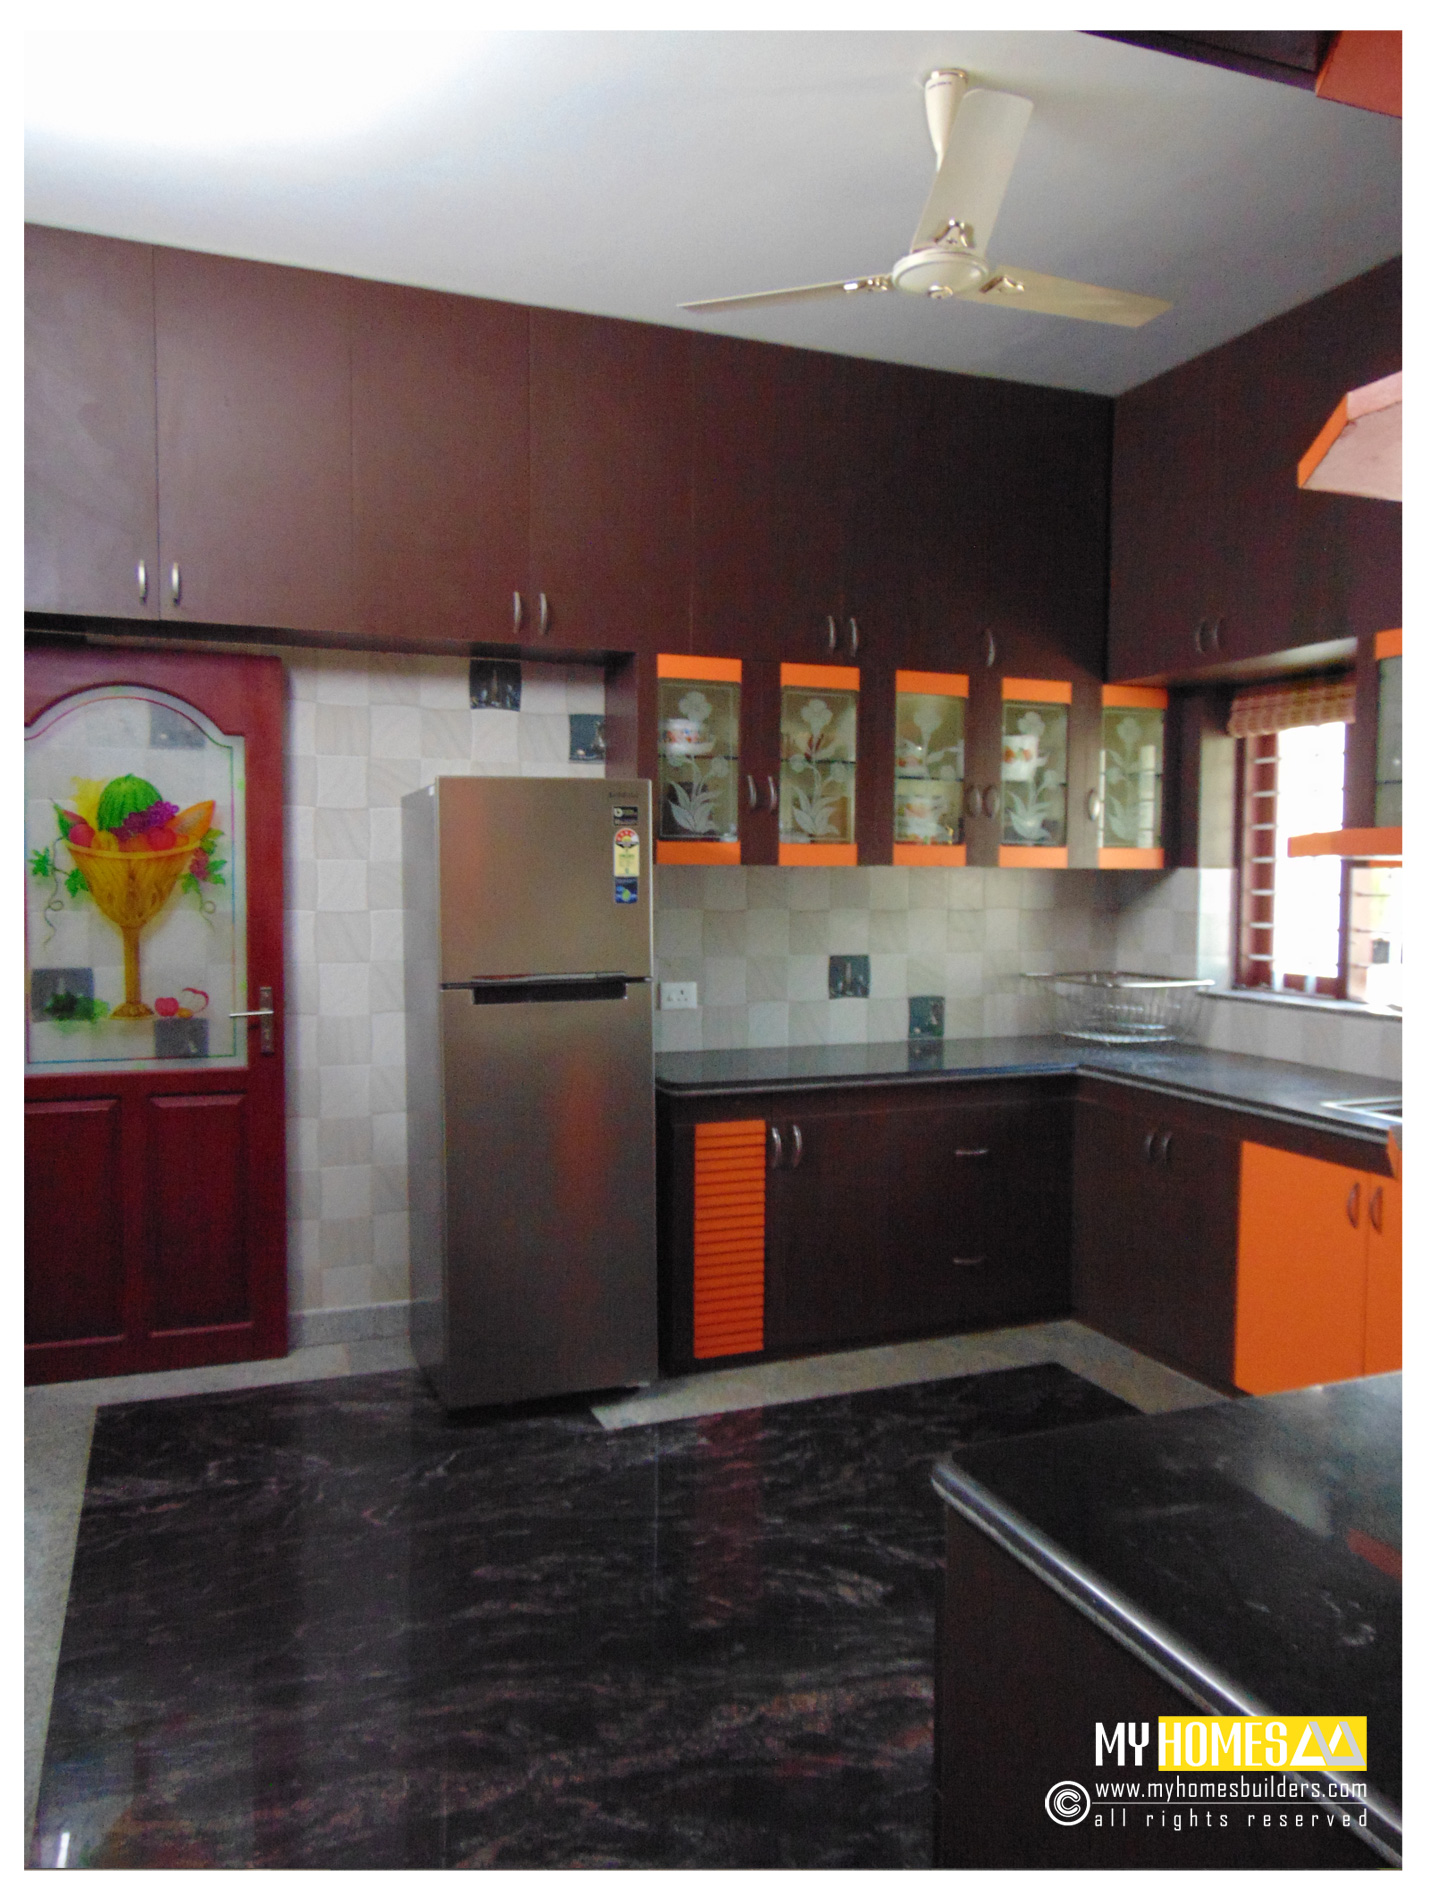 Kerala kitchen designs idea in modular style for house in for Kitchen interior designs pictures